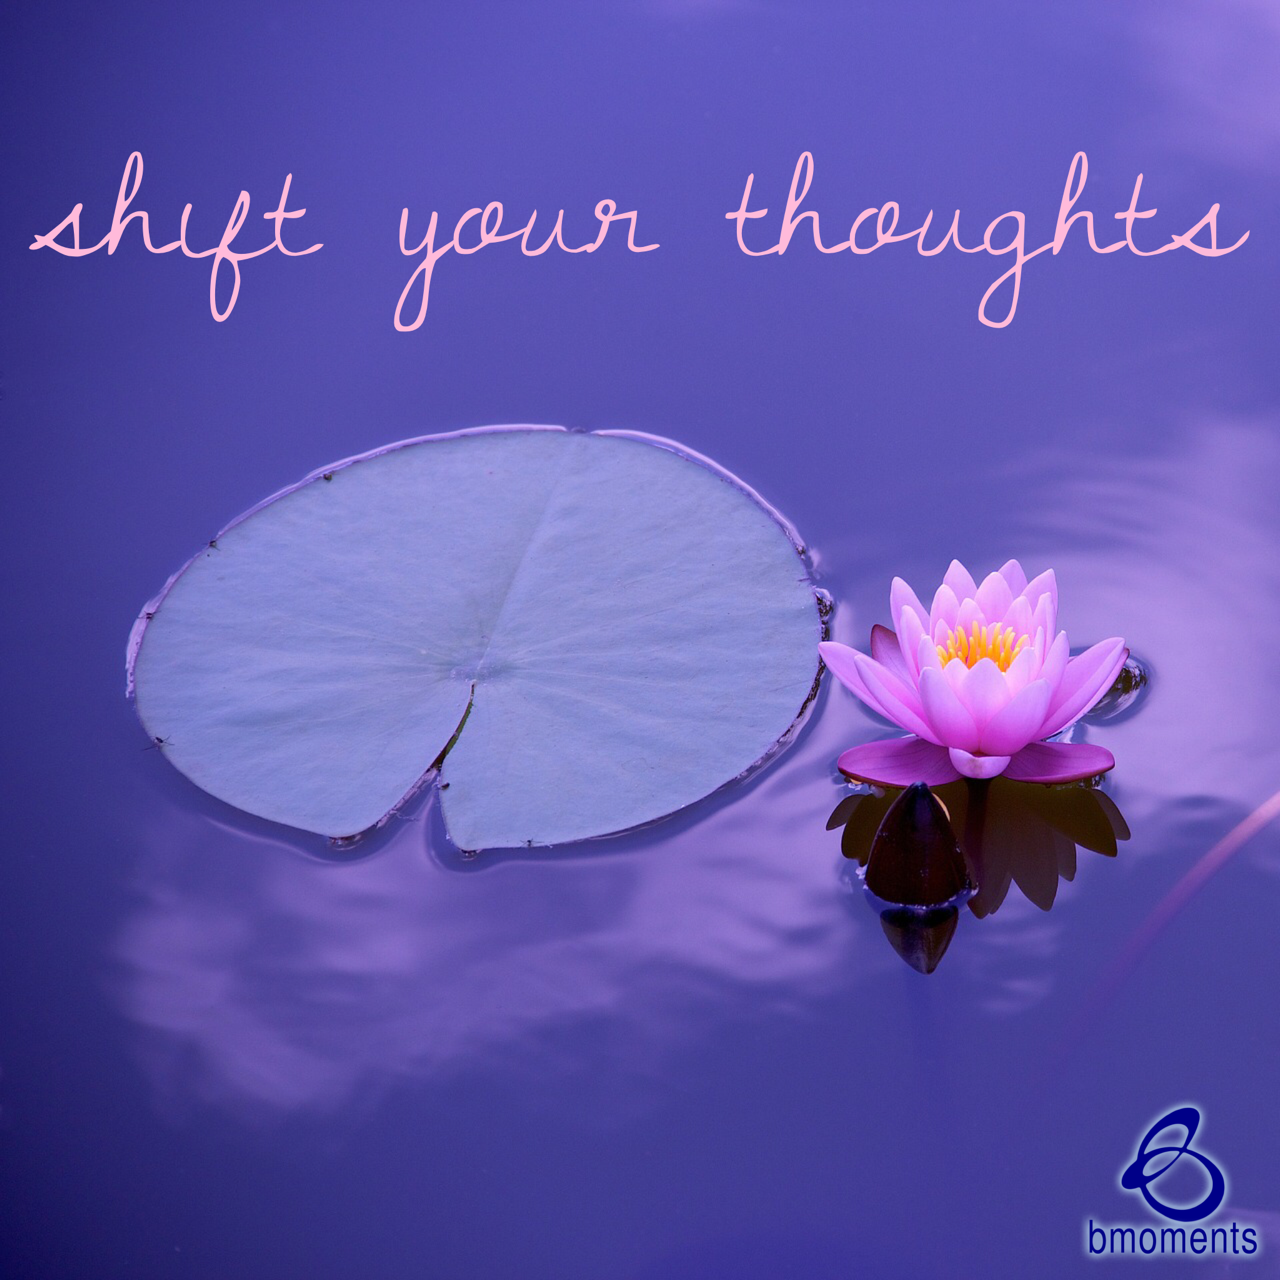 Consciously Shift Your Thoughts and Words